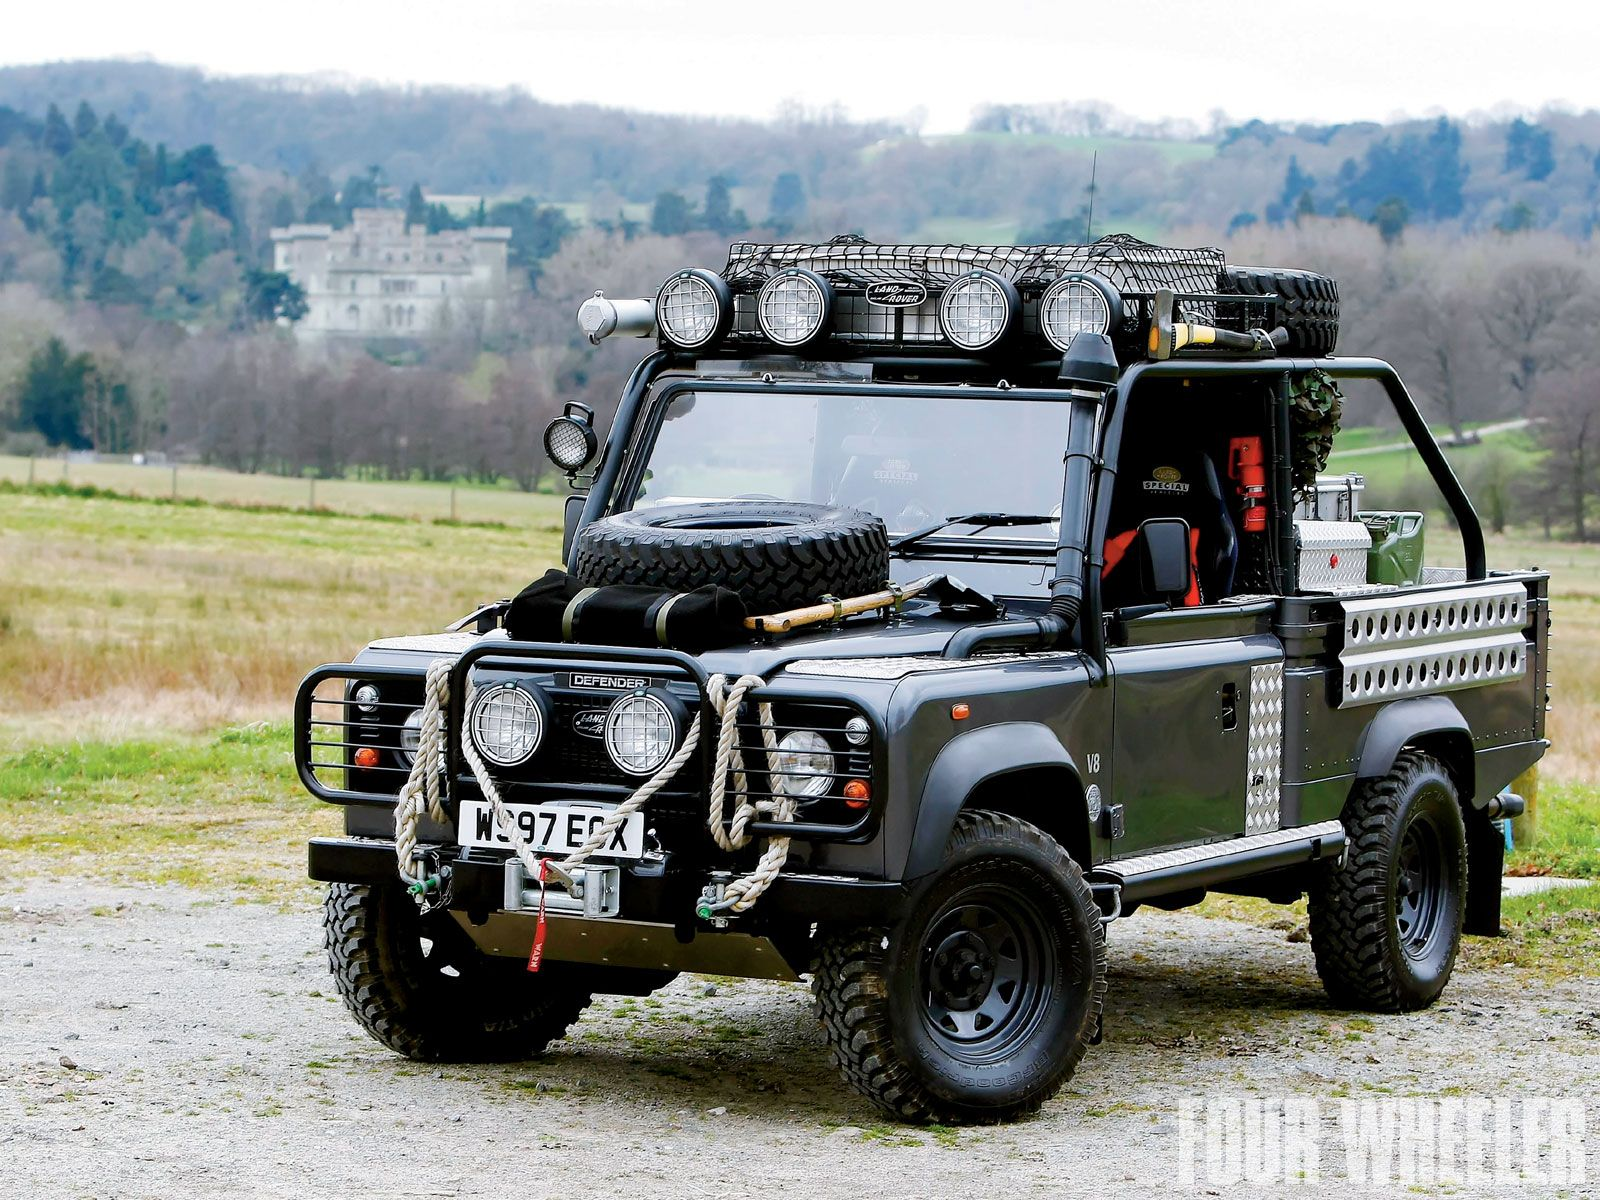 certificate in off matching landrover complete diesel lhd s sale fully body day and restoration hand it with numbers low a blue defender for restored drive marine heritage is lr rear rover finished left land tdi truck